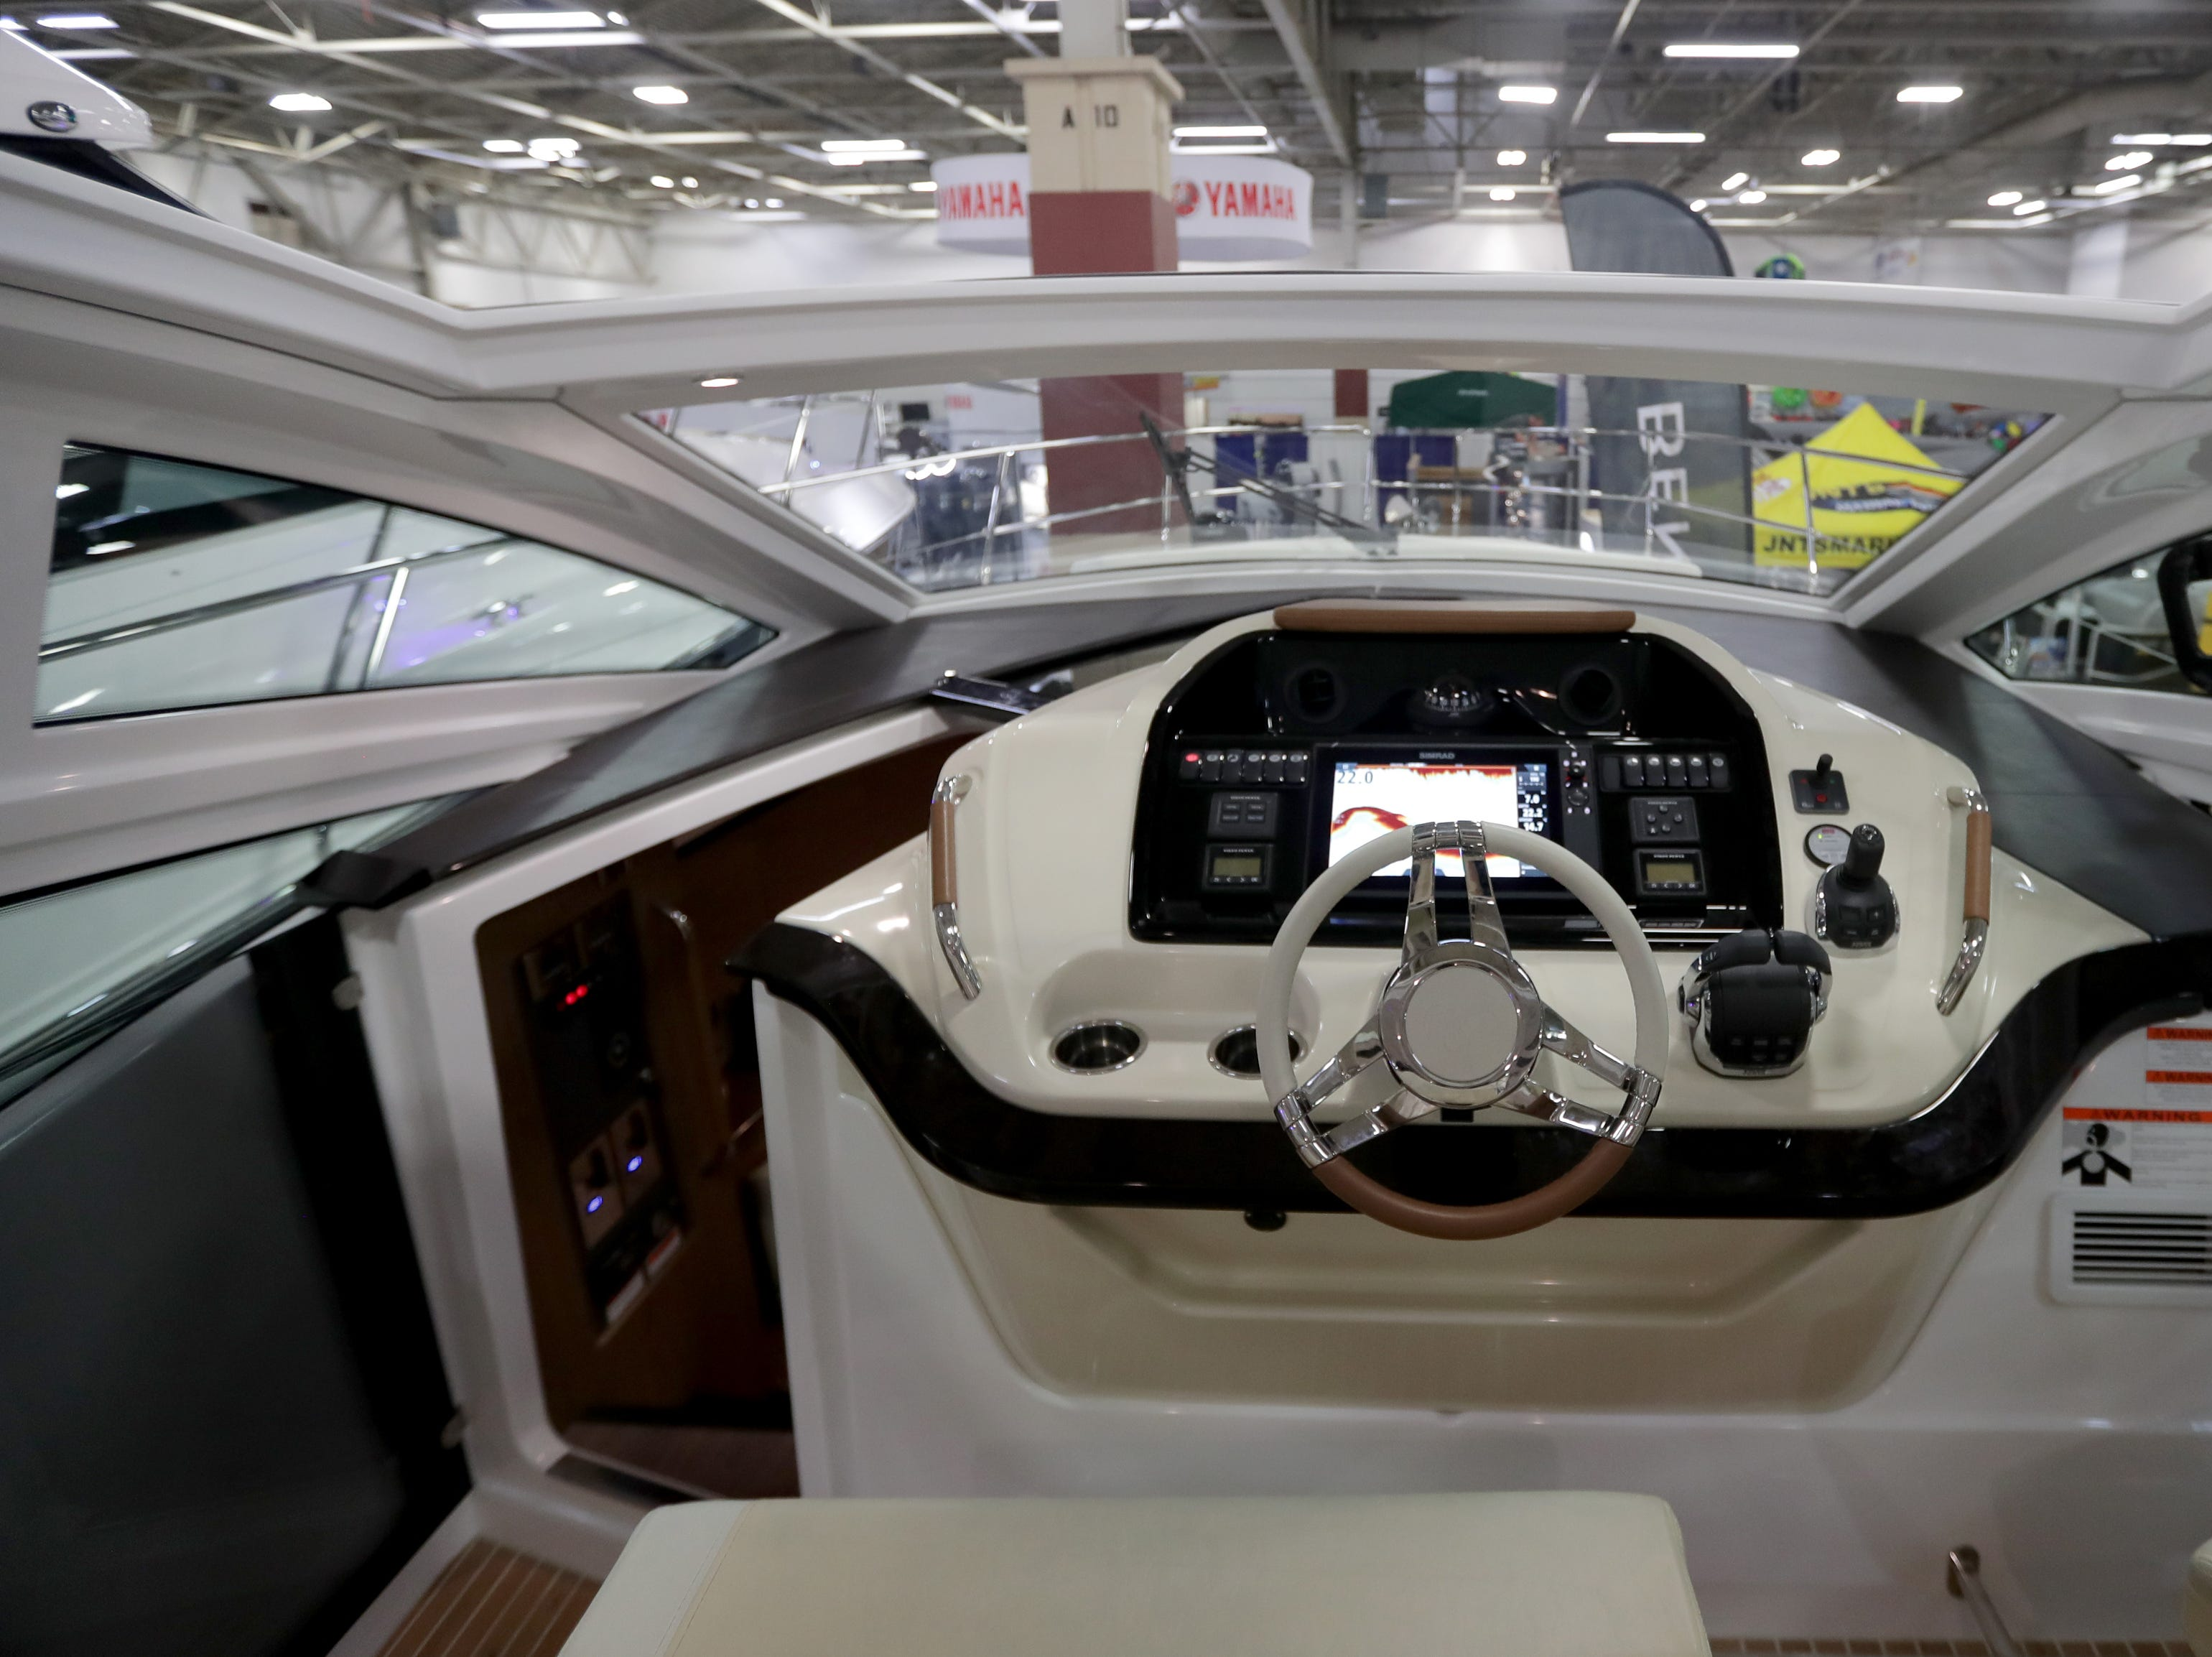 The helm of a 2019 40-foot Beneteau  yacht, which lists for $500,000.